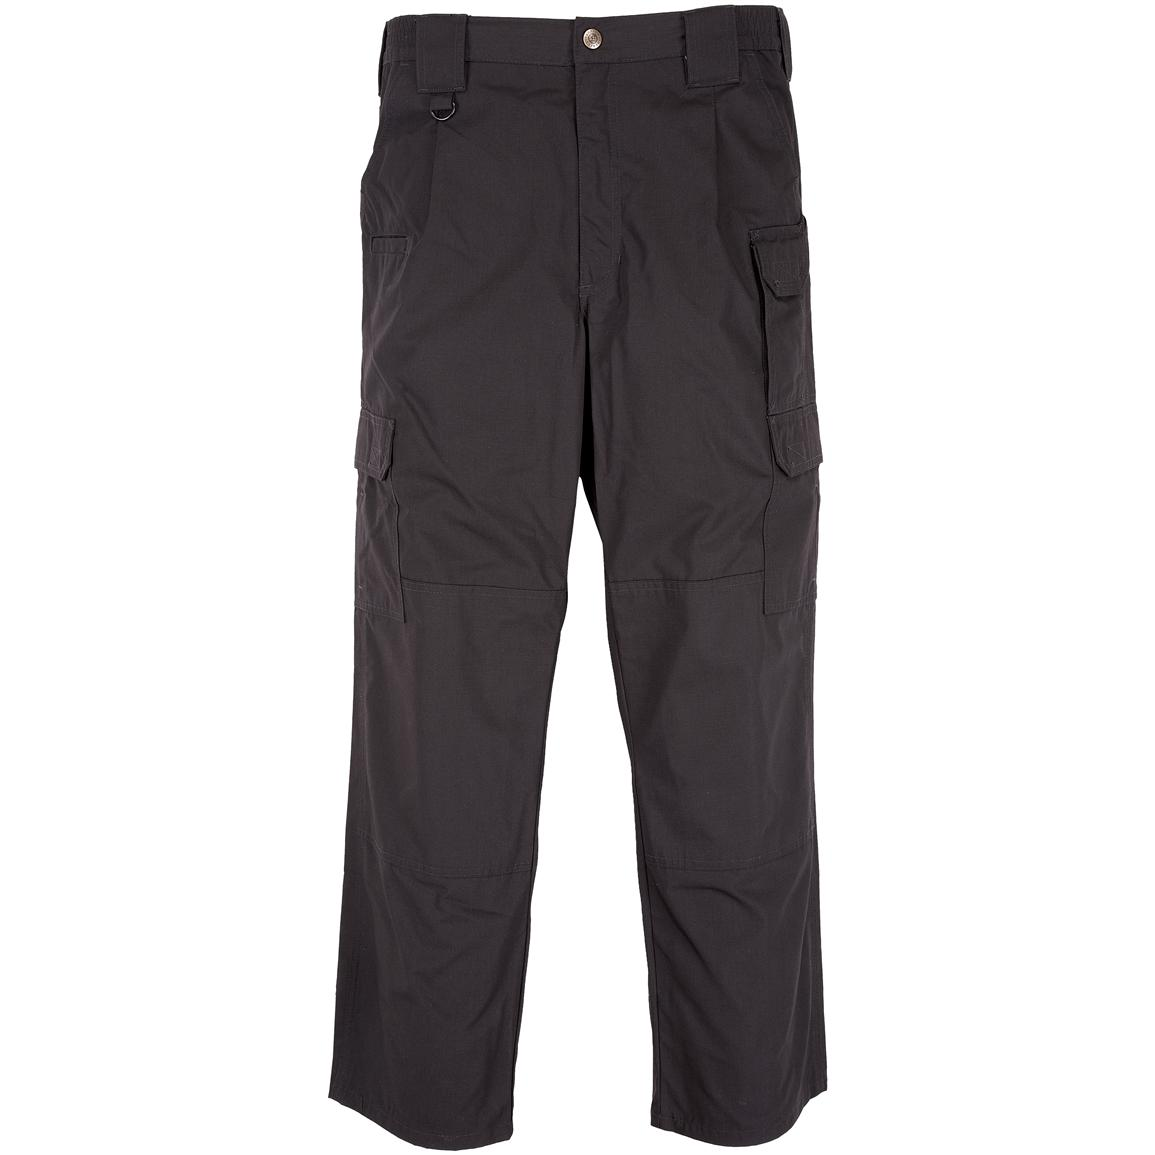 Men's 5.11 Tactical® Taclite Pro Pants, Black